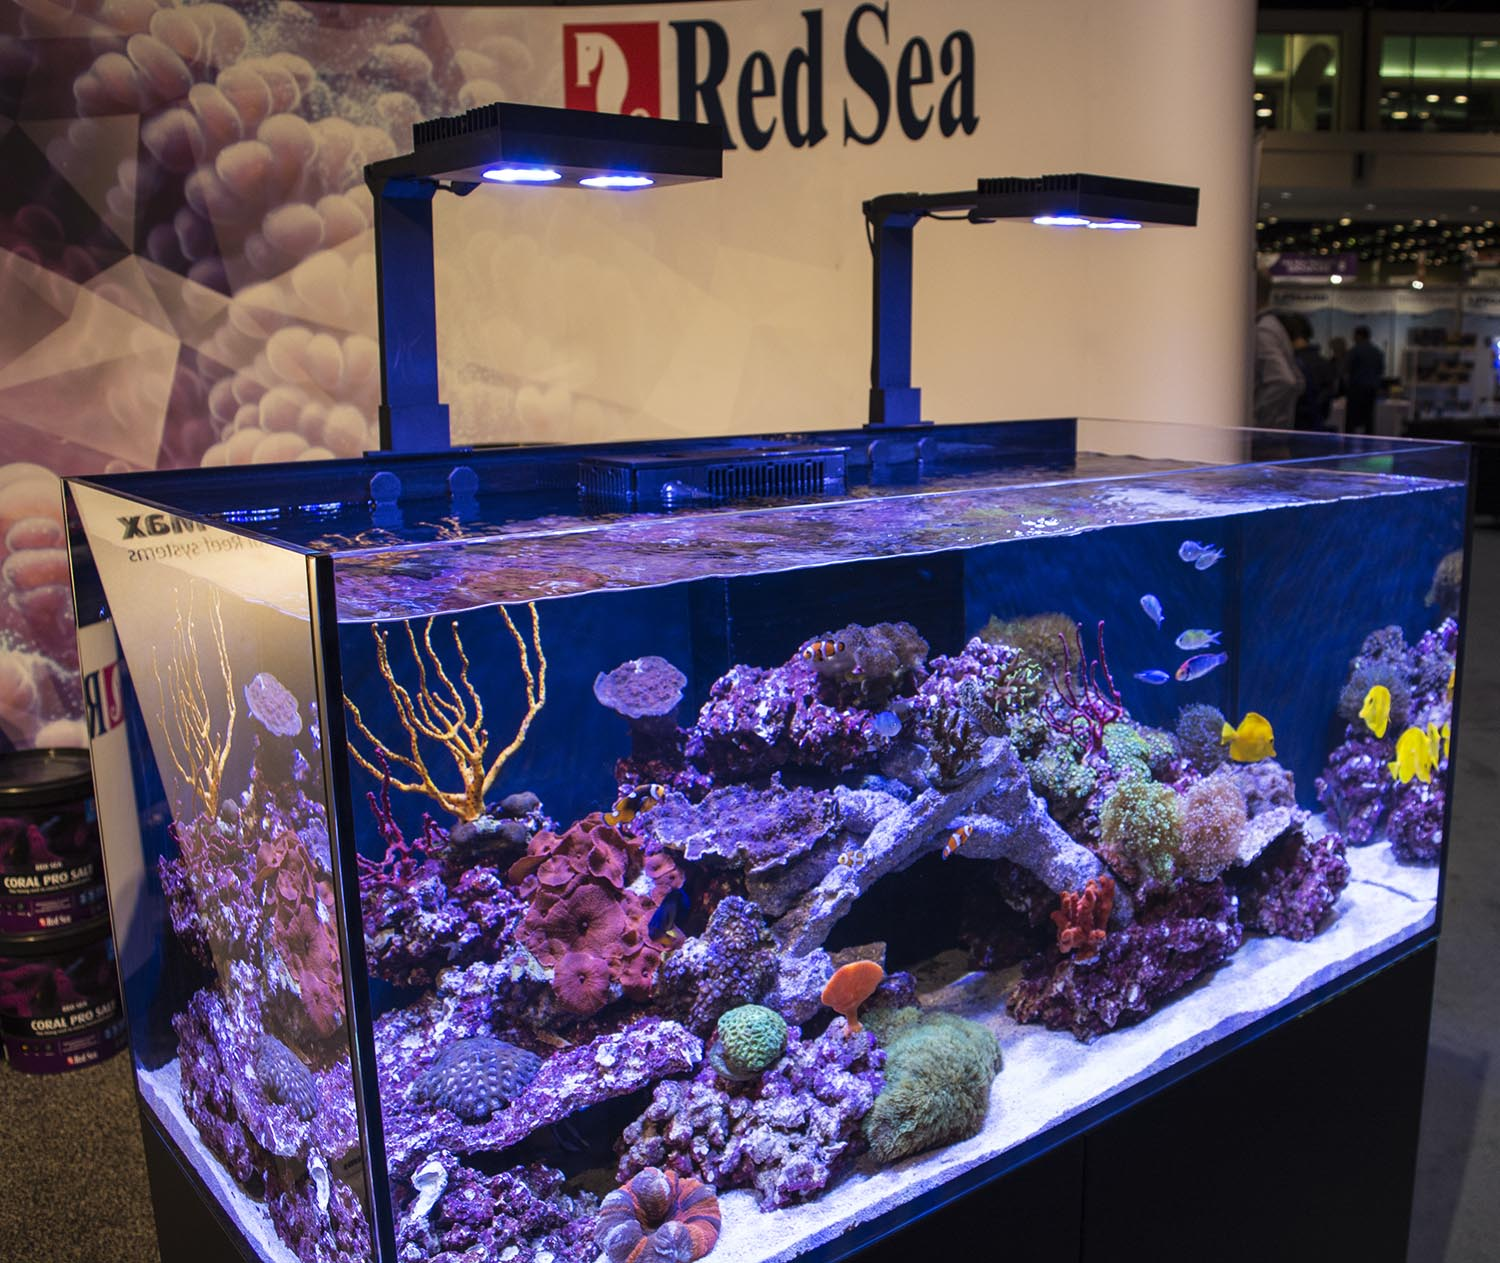 An immaculate display tank from Red Sea showcasing their Reefer line of high end all-in-one systems